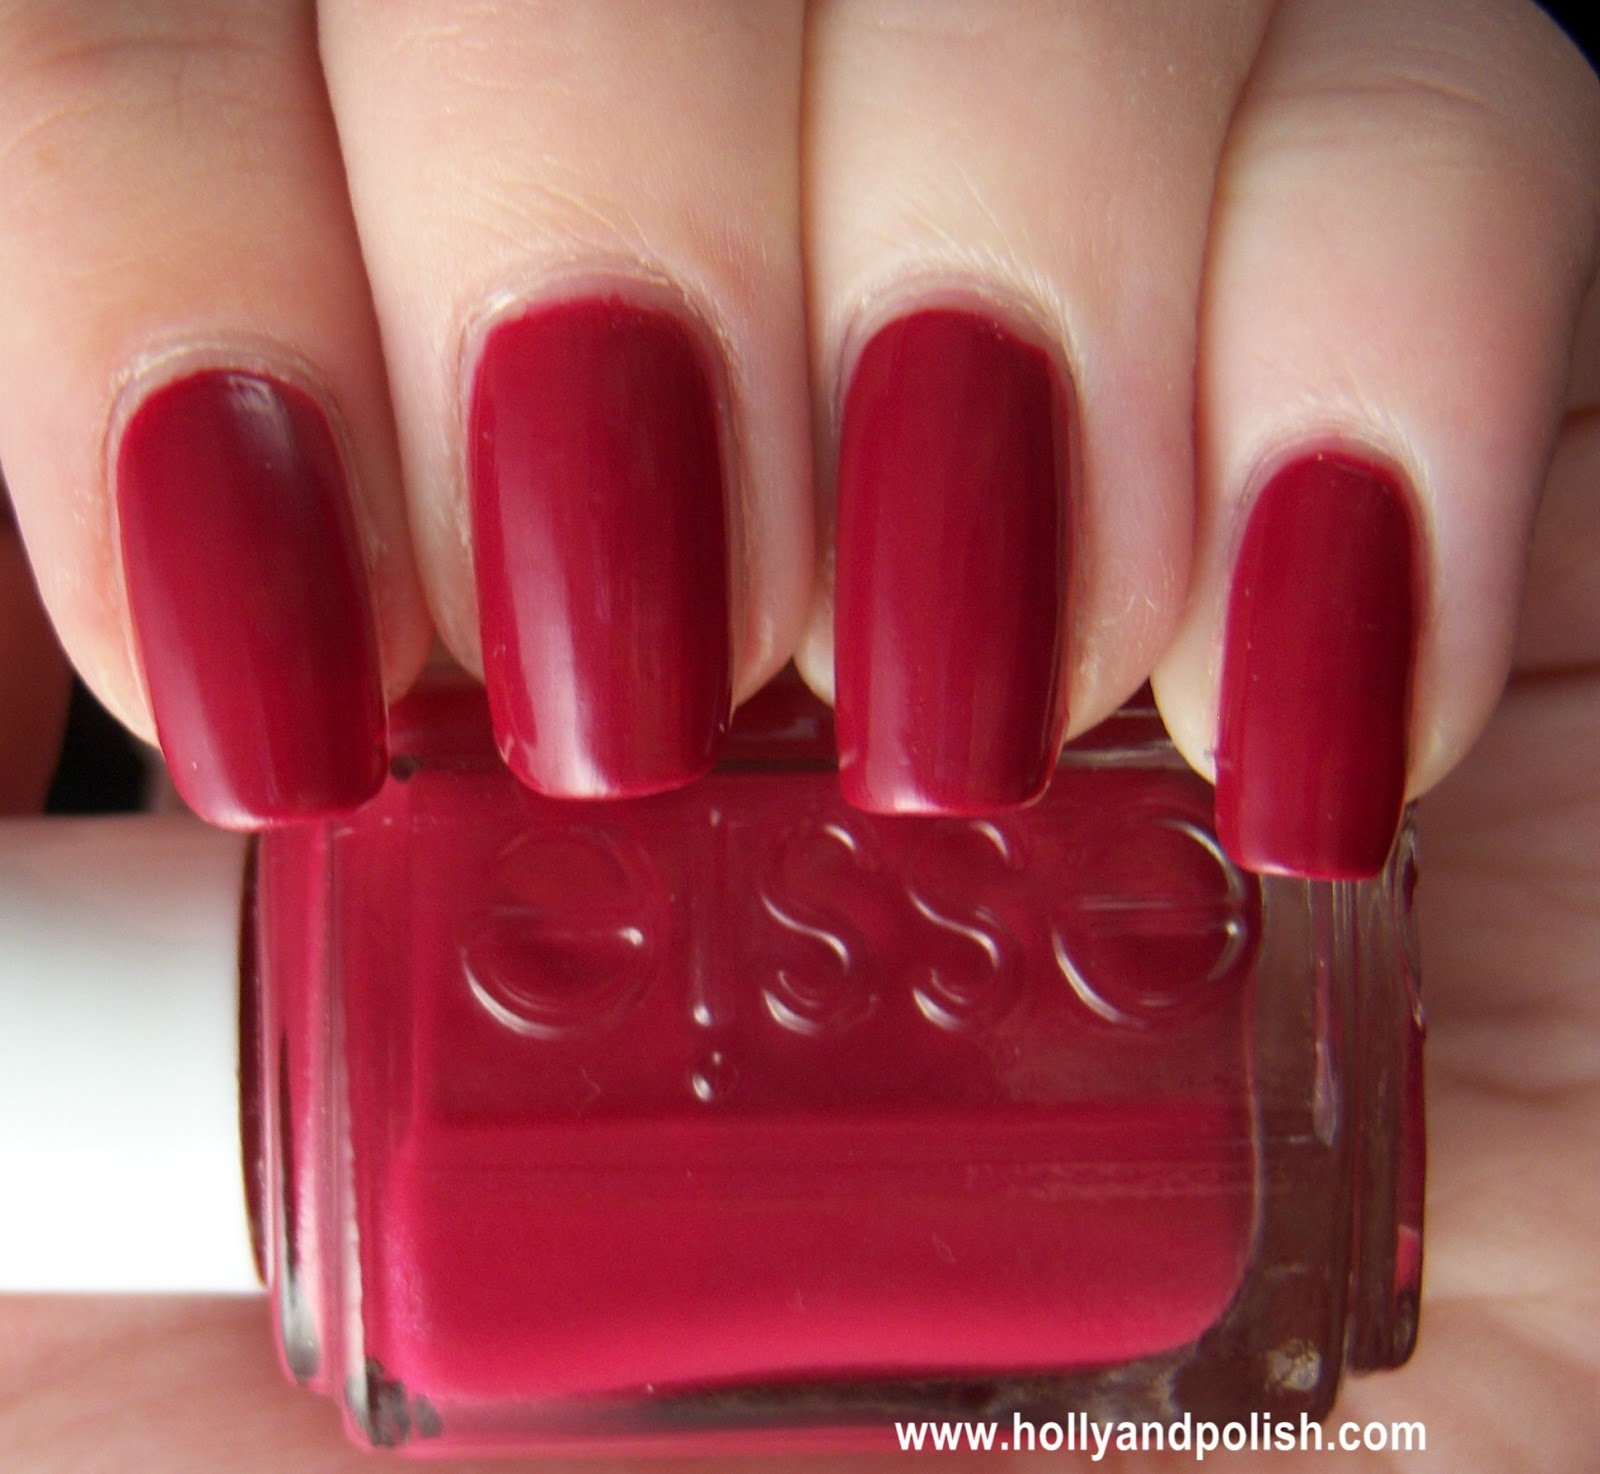 Holly and Polish: A Nail Polish and Beauty Blog: Essie Very Cranberry